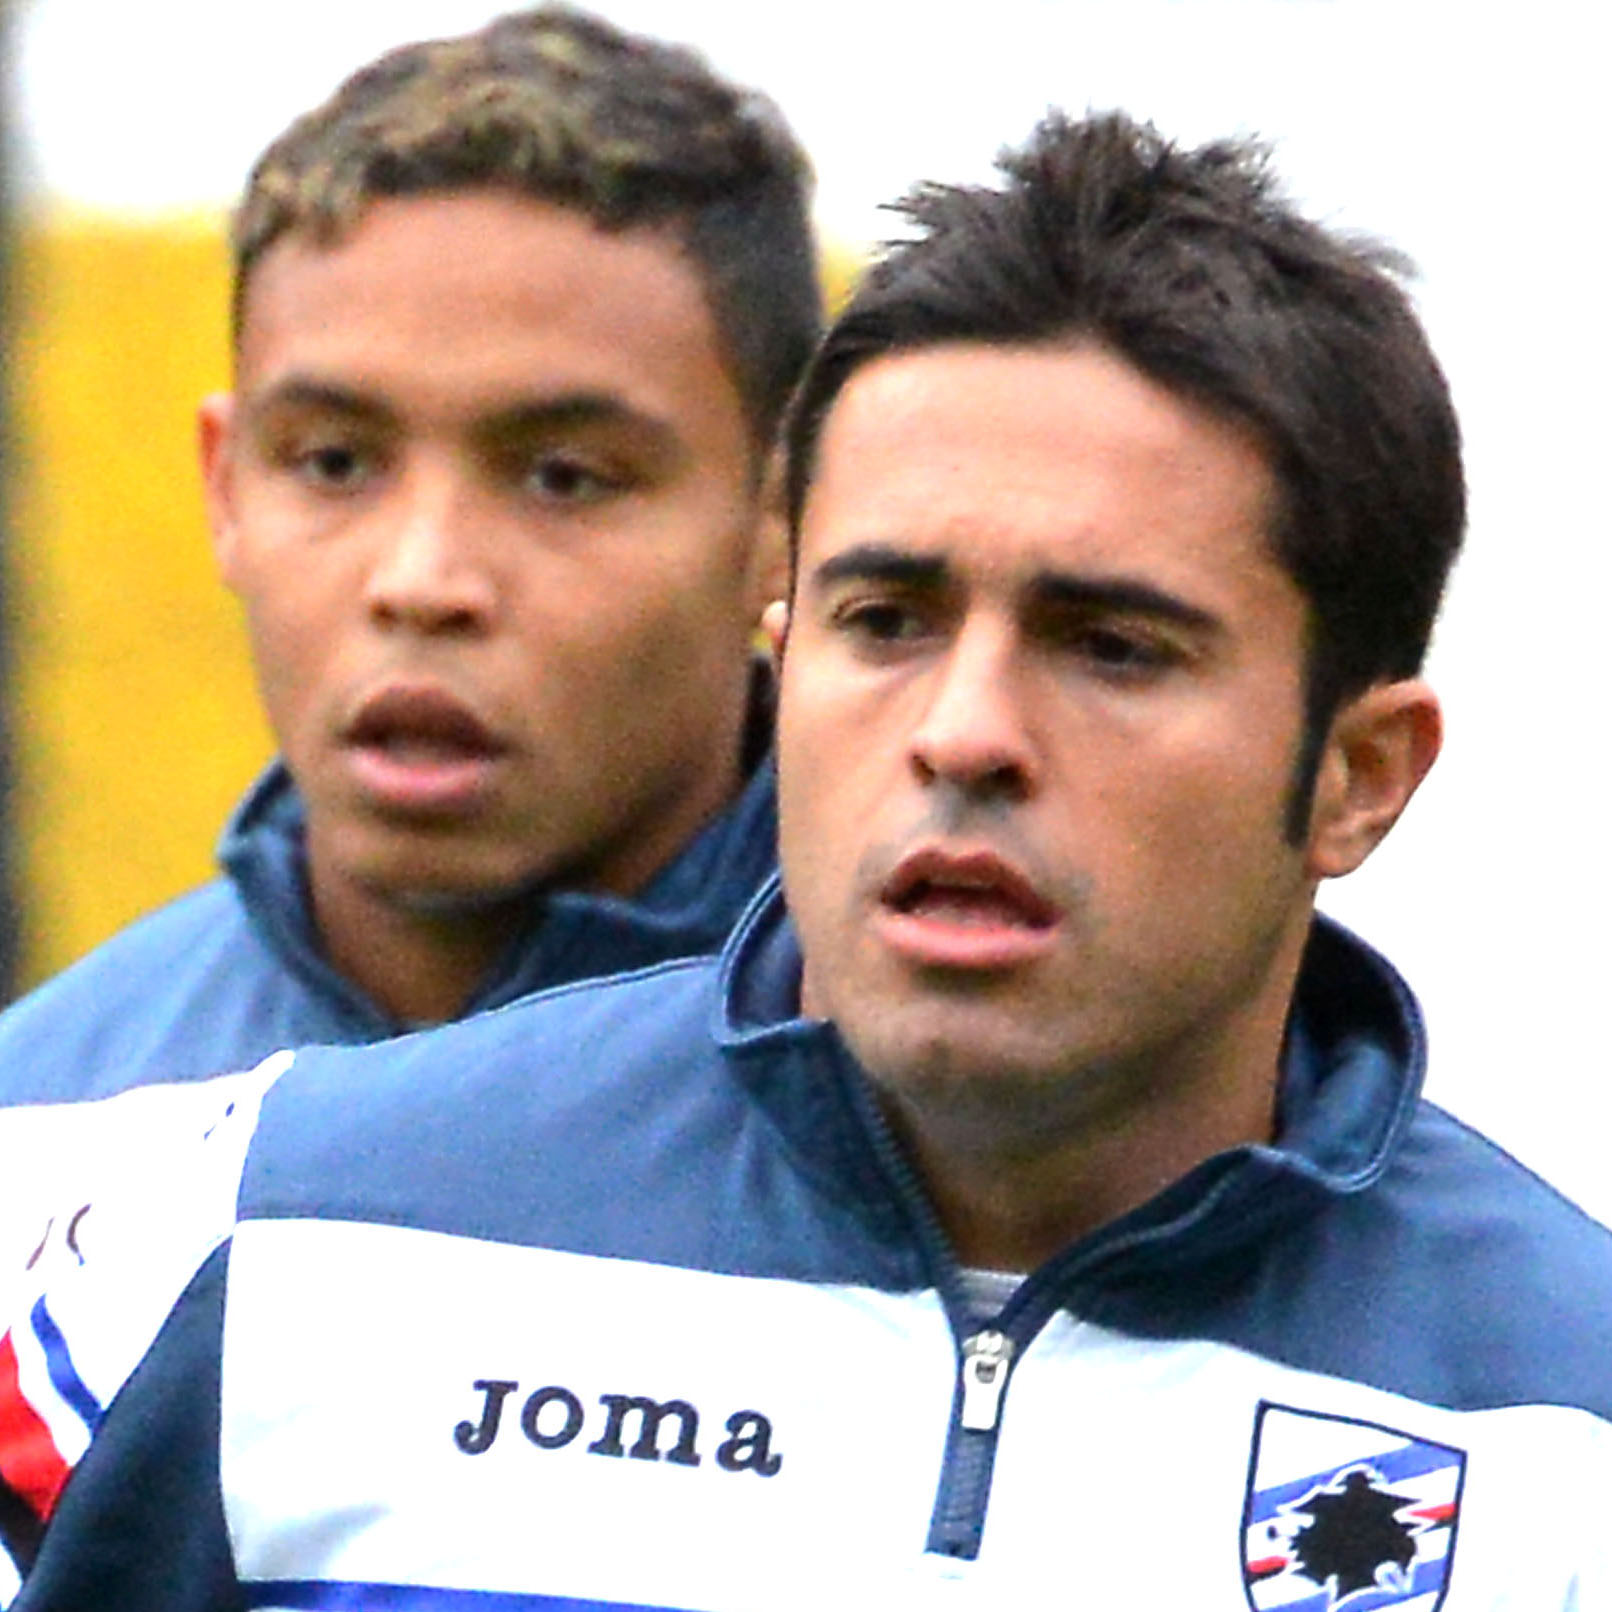 """Eder to Samp TV: """"Ignore transfer rumours, let's just concentrate on the football"""""""